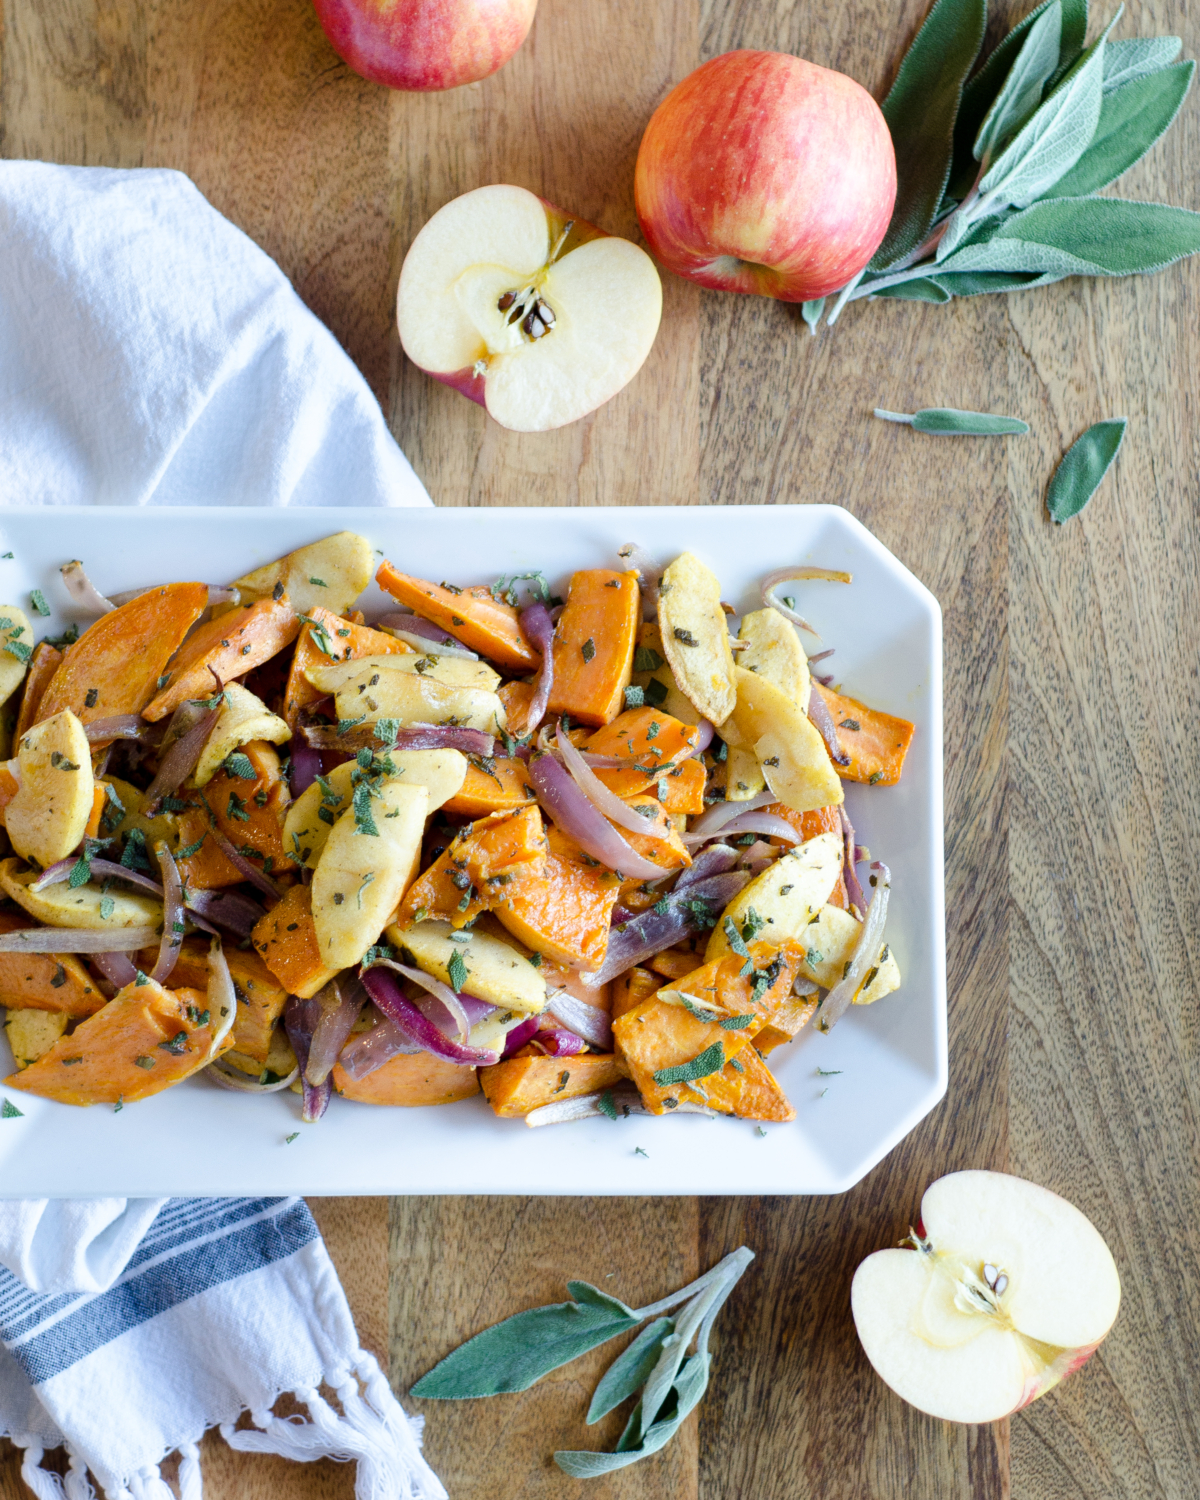 Recipe for roasted sweet potatoes and apples. An easy and delicious fall or winter side dish. Would be an excellent easy Thanksgiving side dish too!